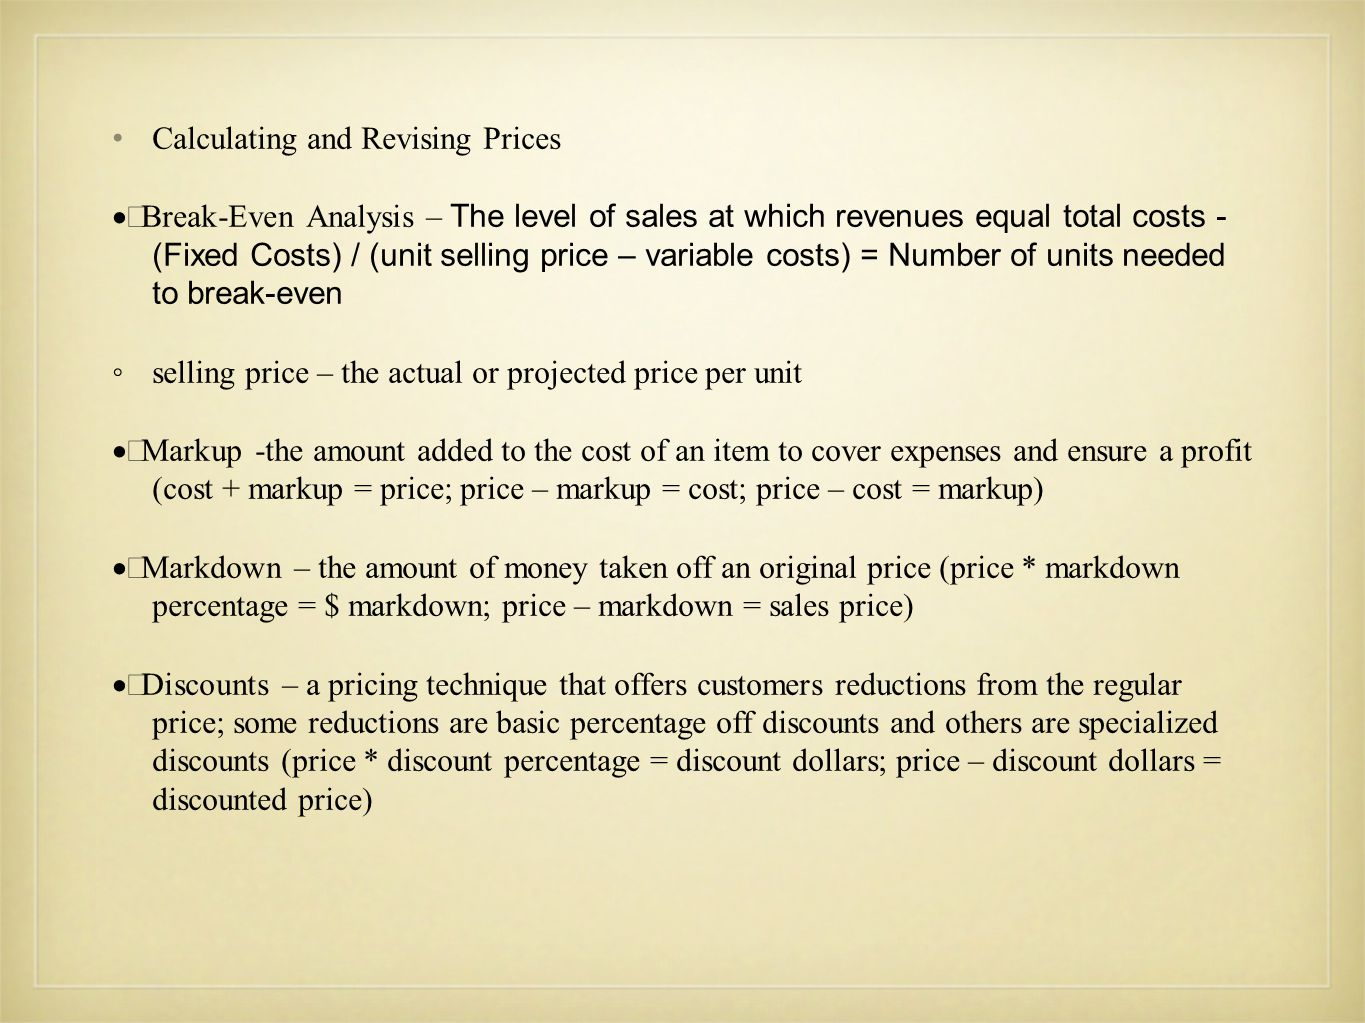 Calculating and Revising Prices